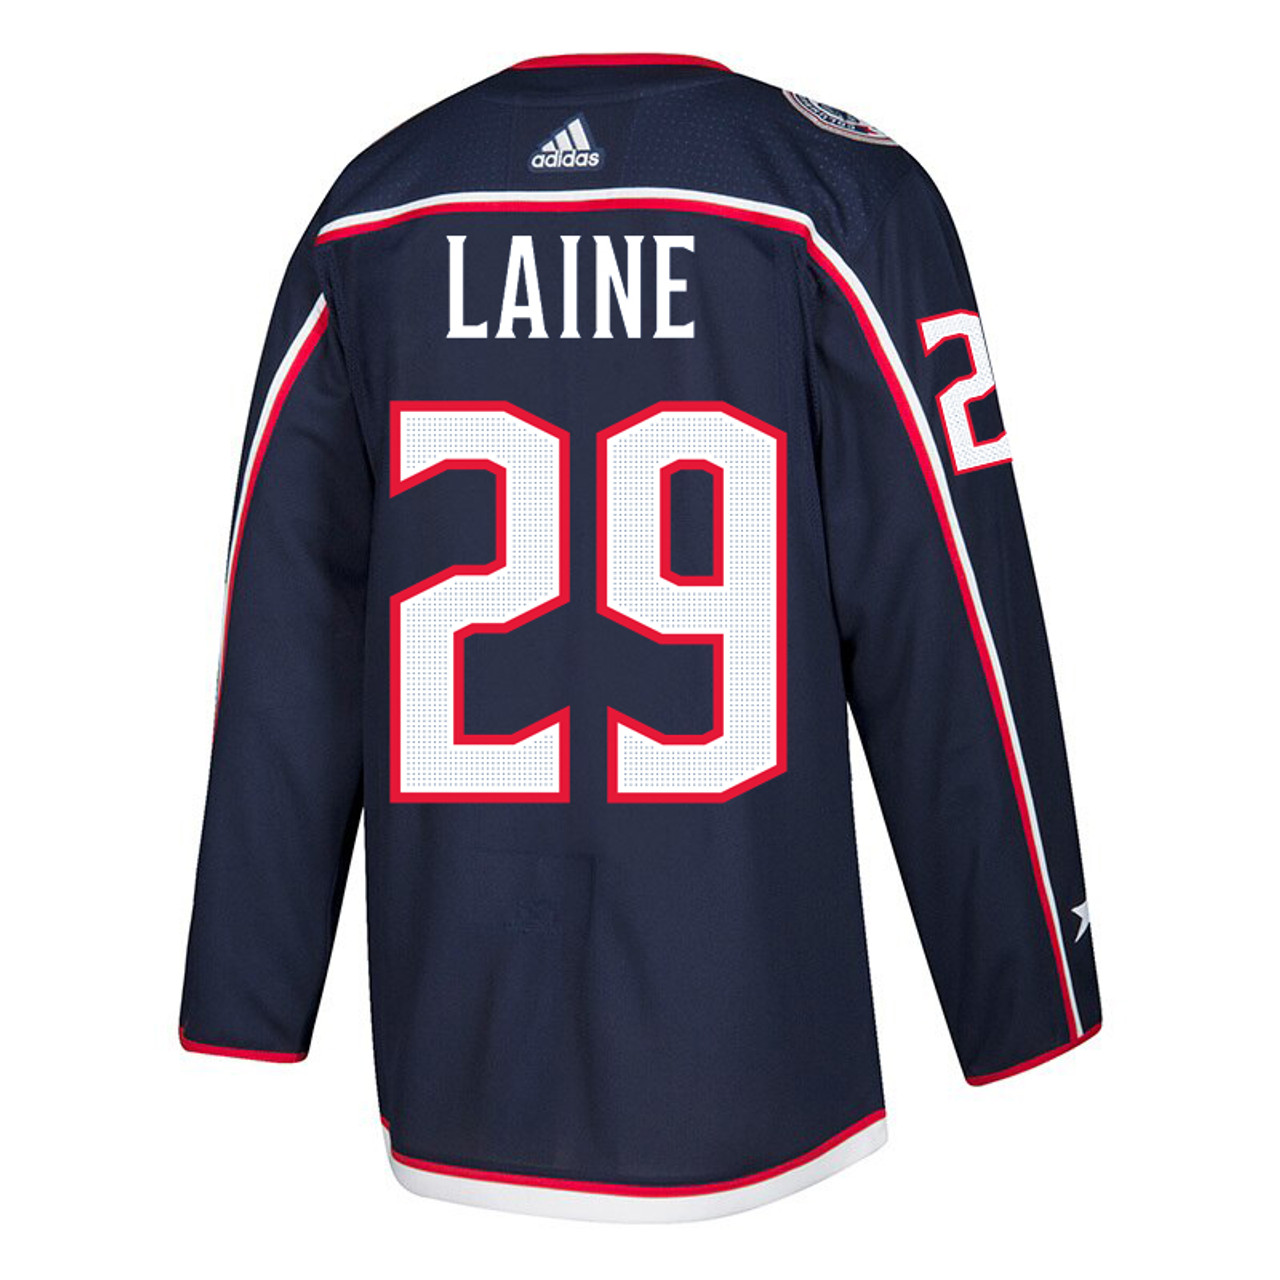 Adidas Authentic Pro Laine Home Jersey